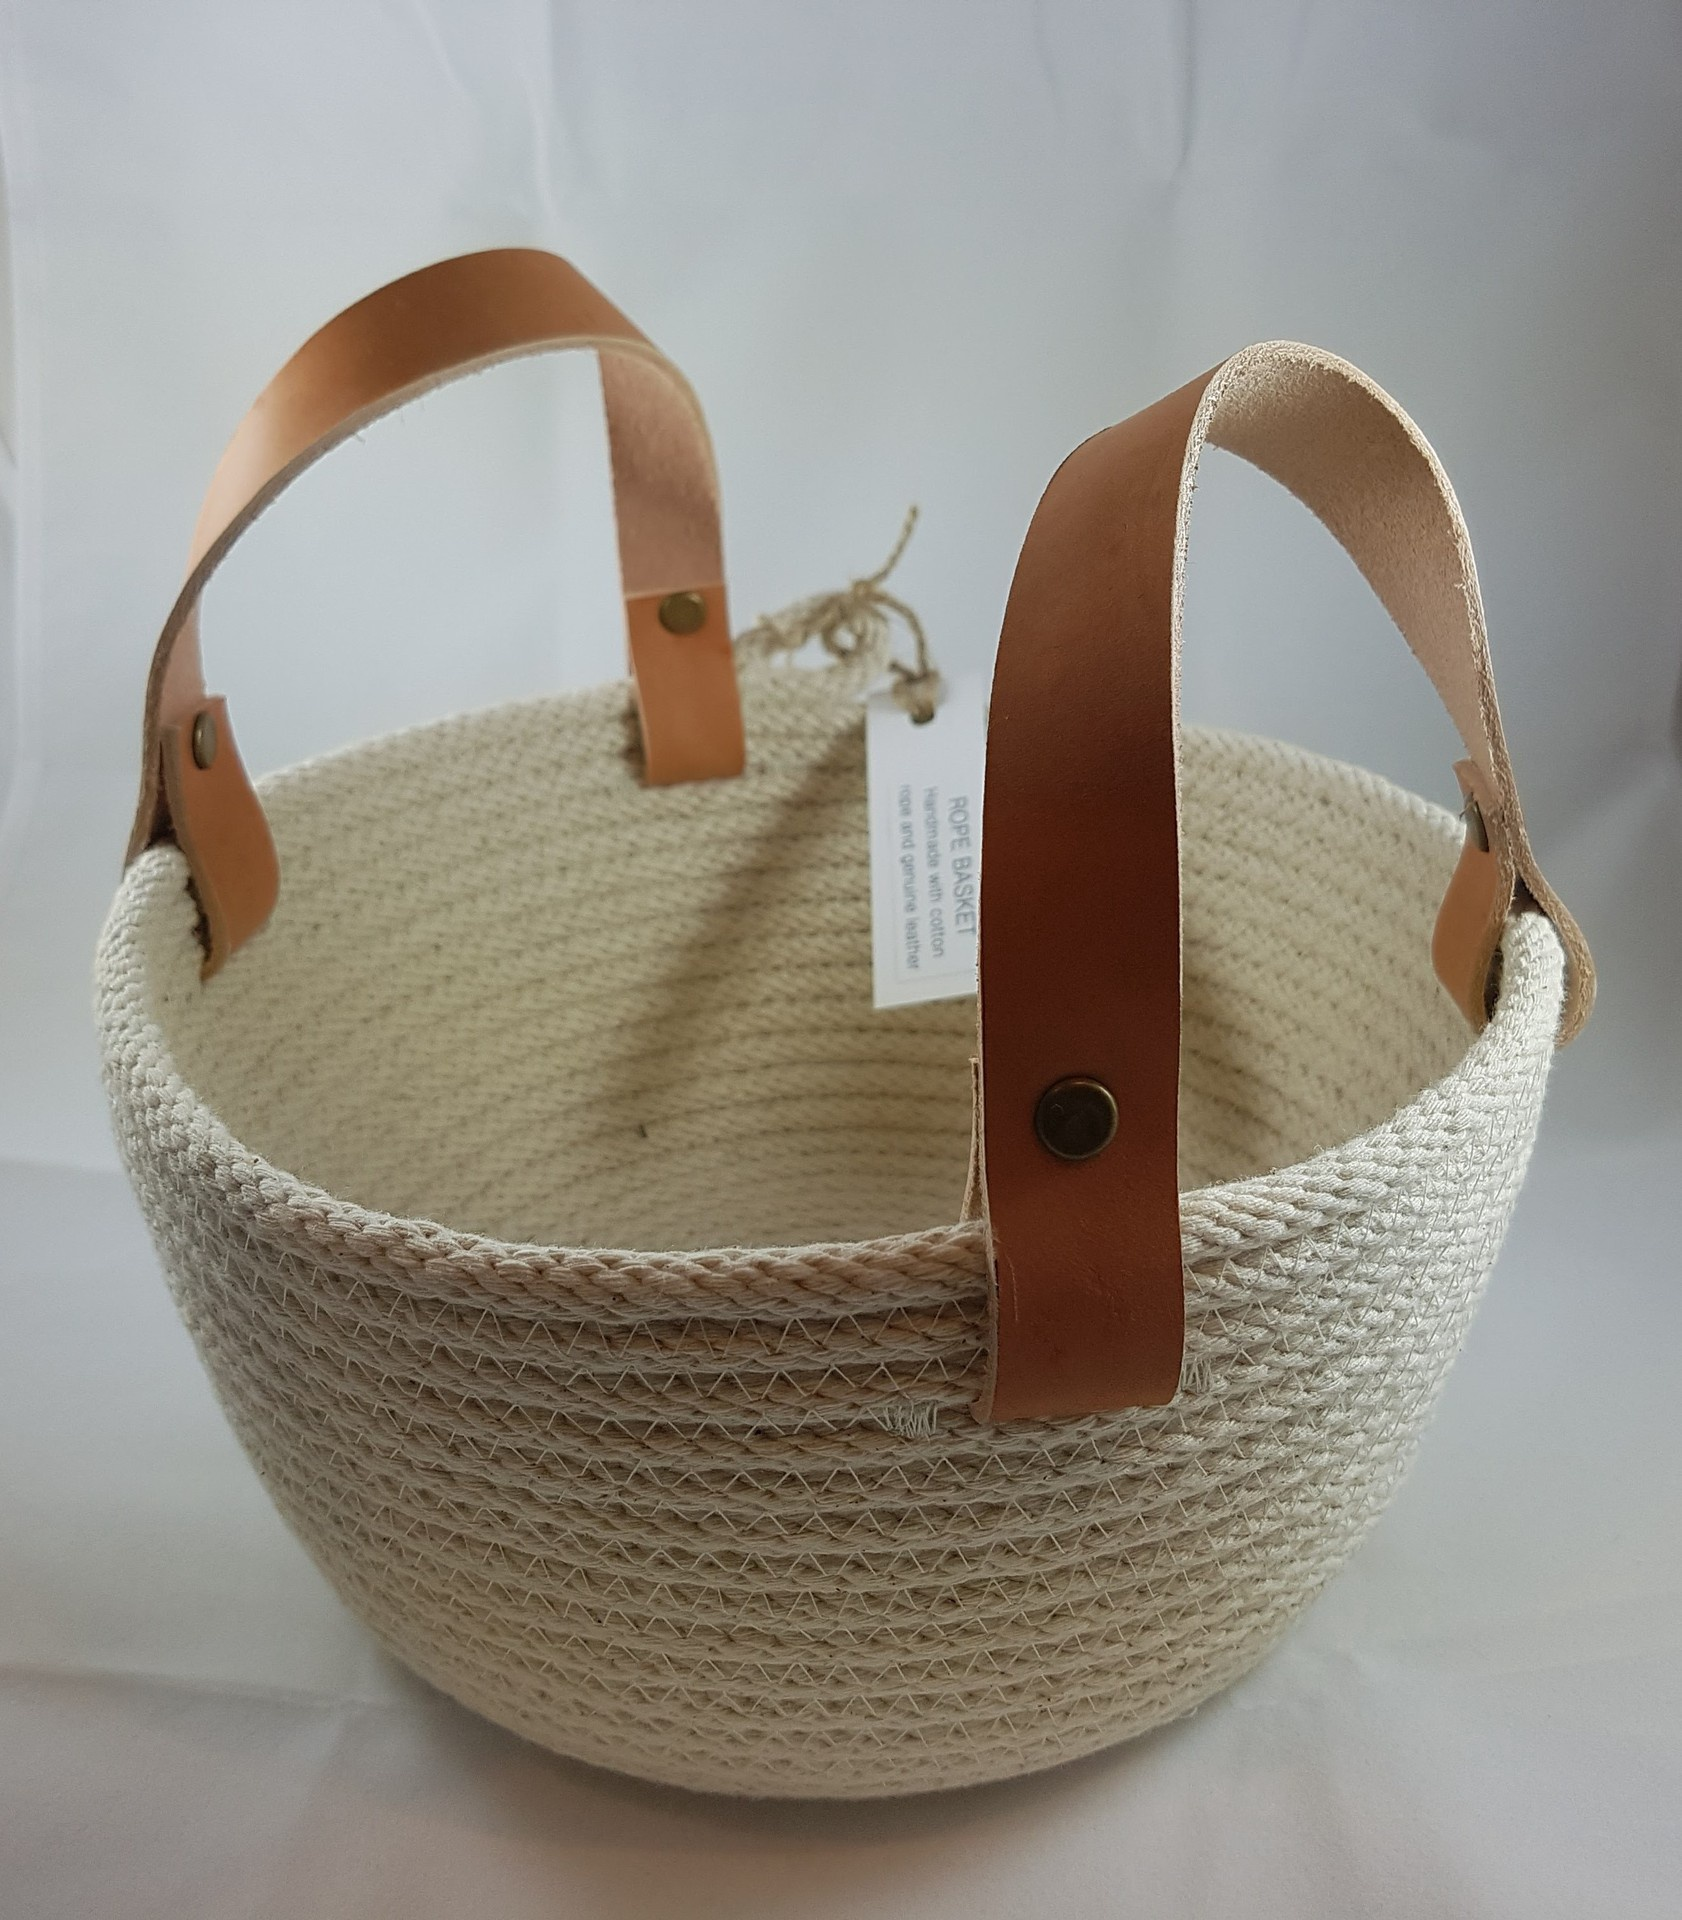 Rope Basket (22cm) with leather handles